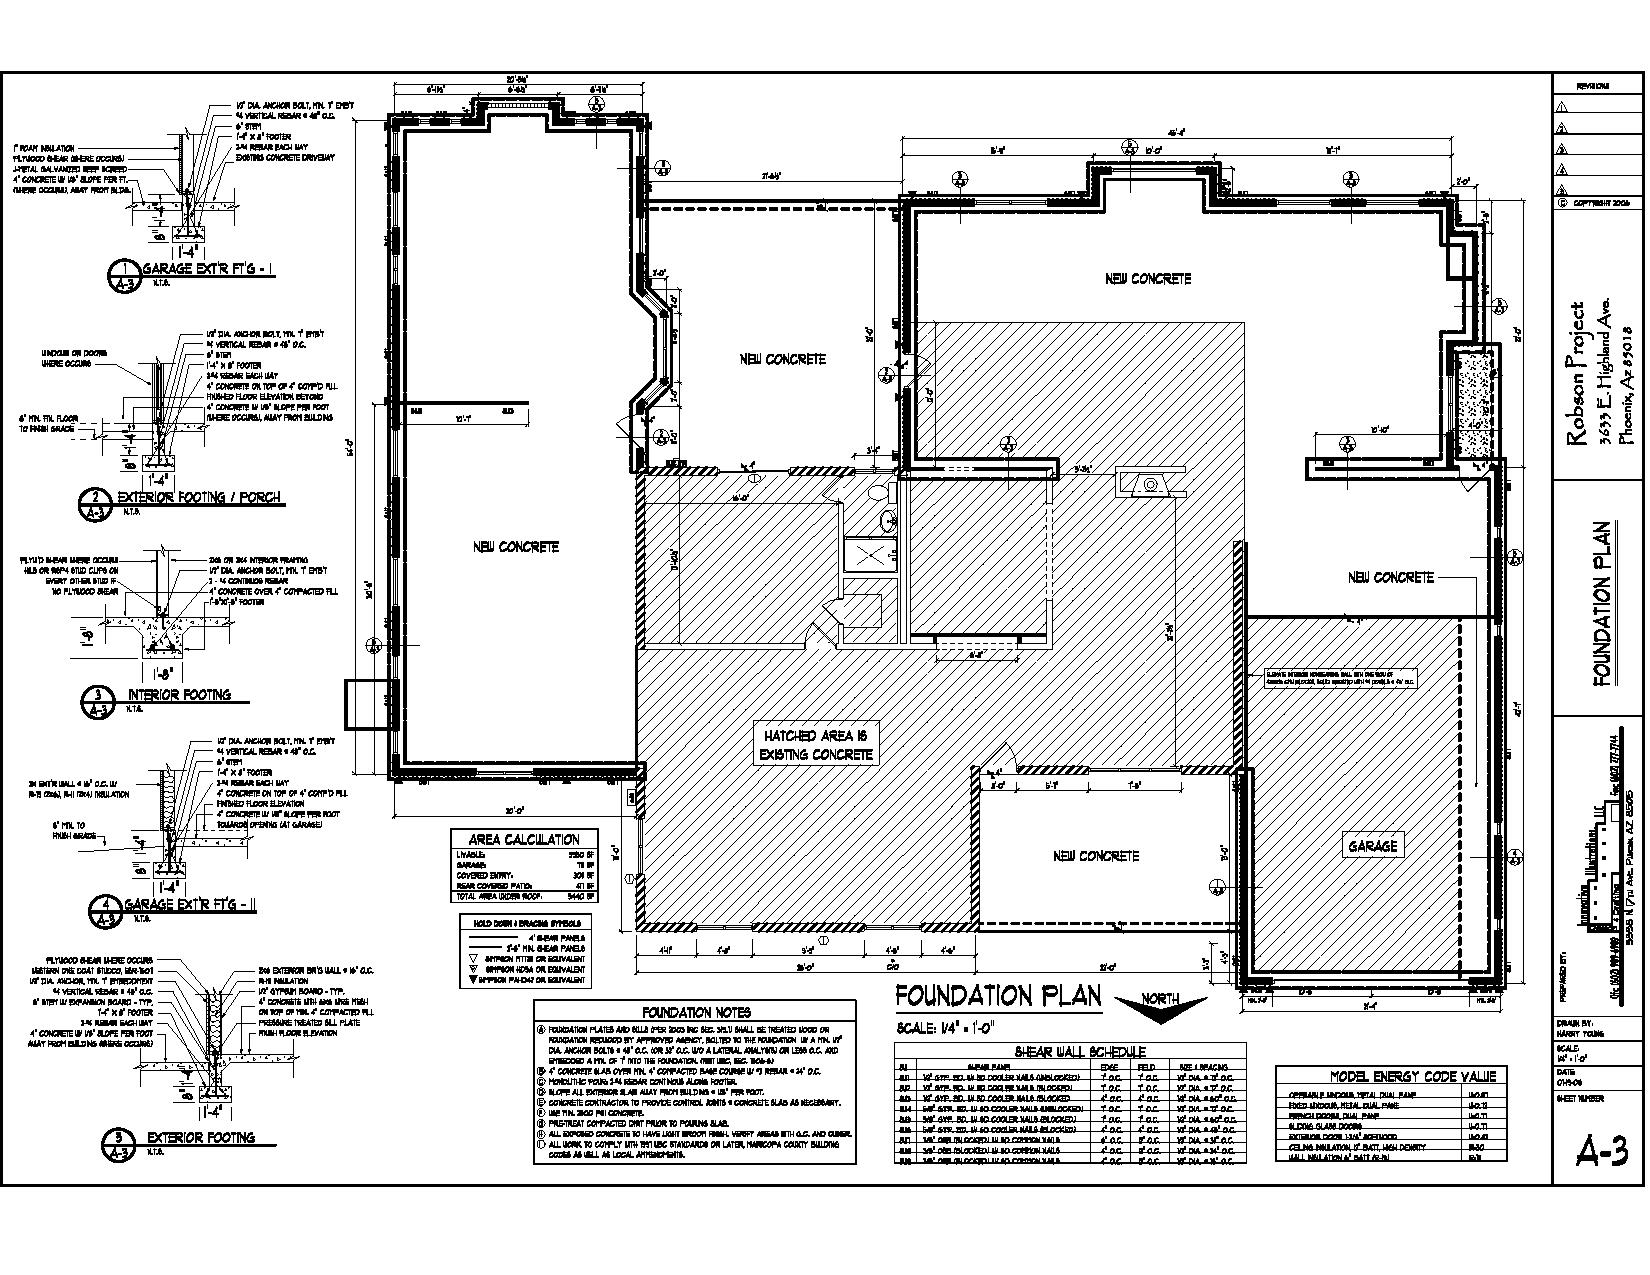 Drawings harry young design drafting for Foundation plan drawing